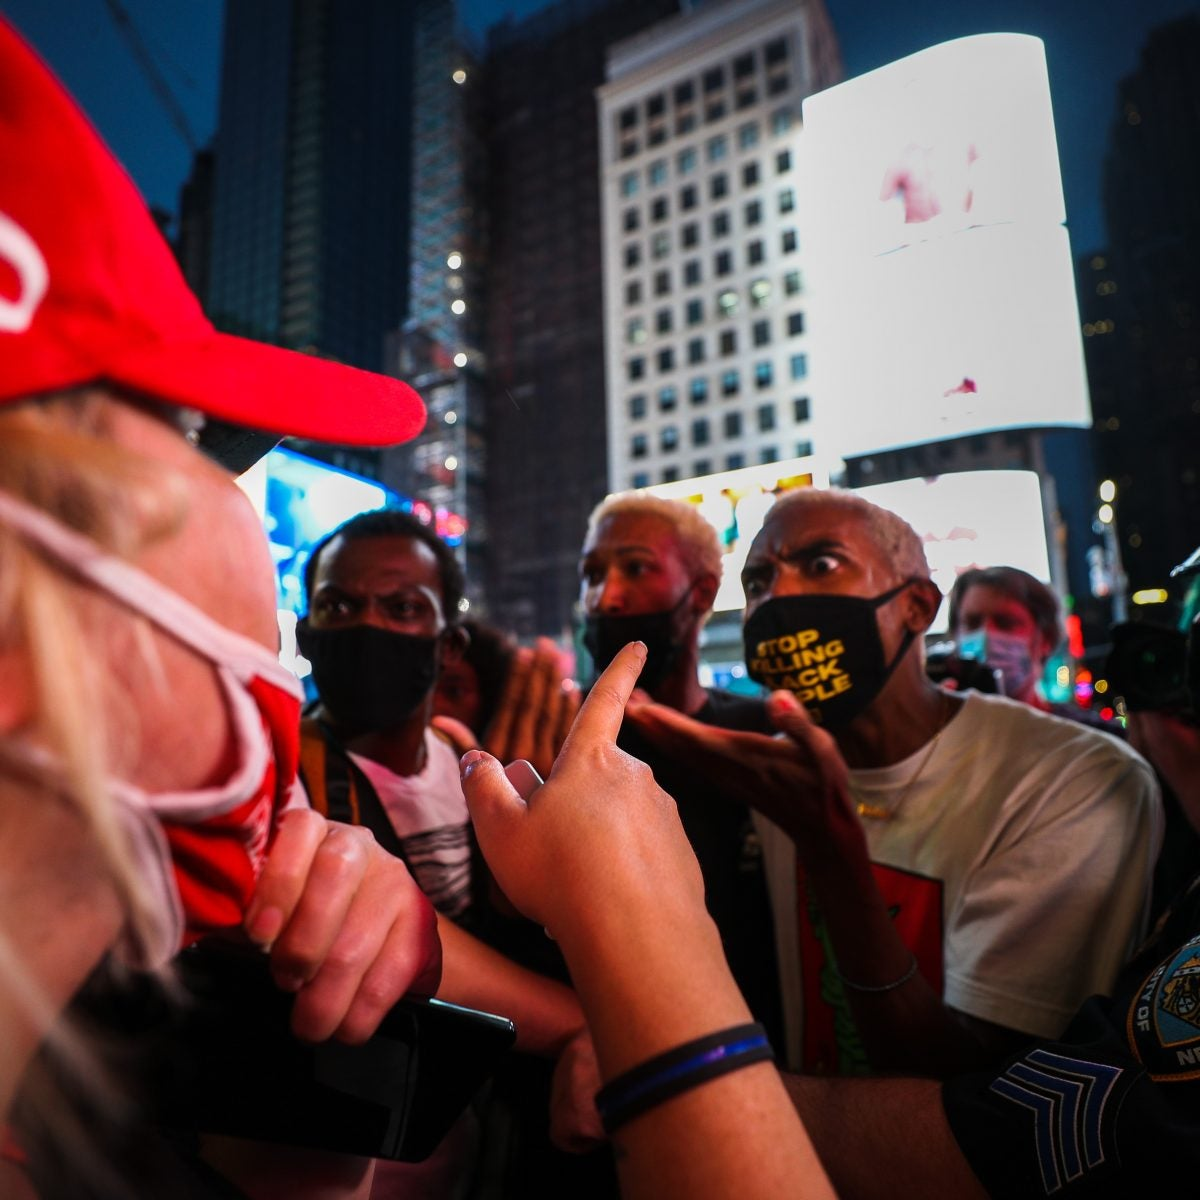 Police Say Pro-Trump Counterprotester Plowed Car Into Black Lives Matter Demonstrators In Times Square